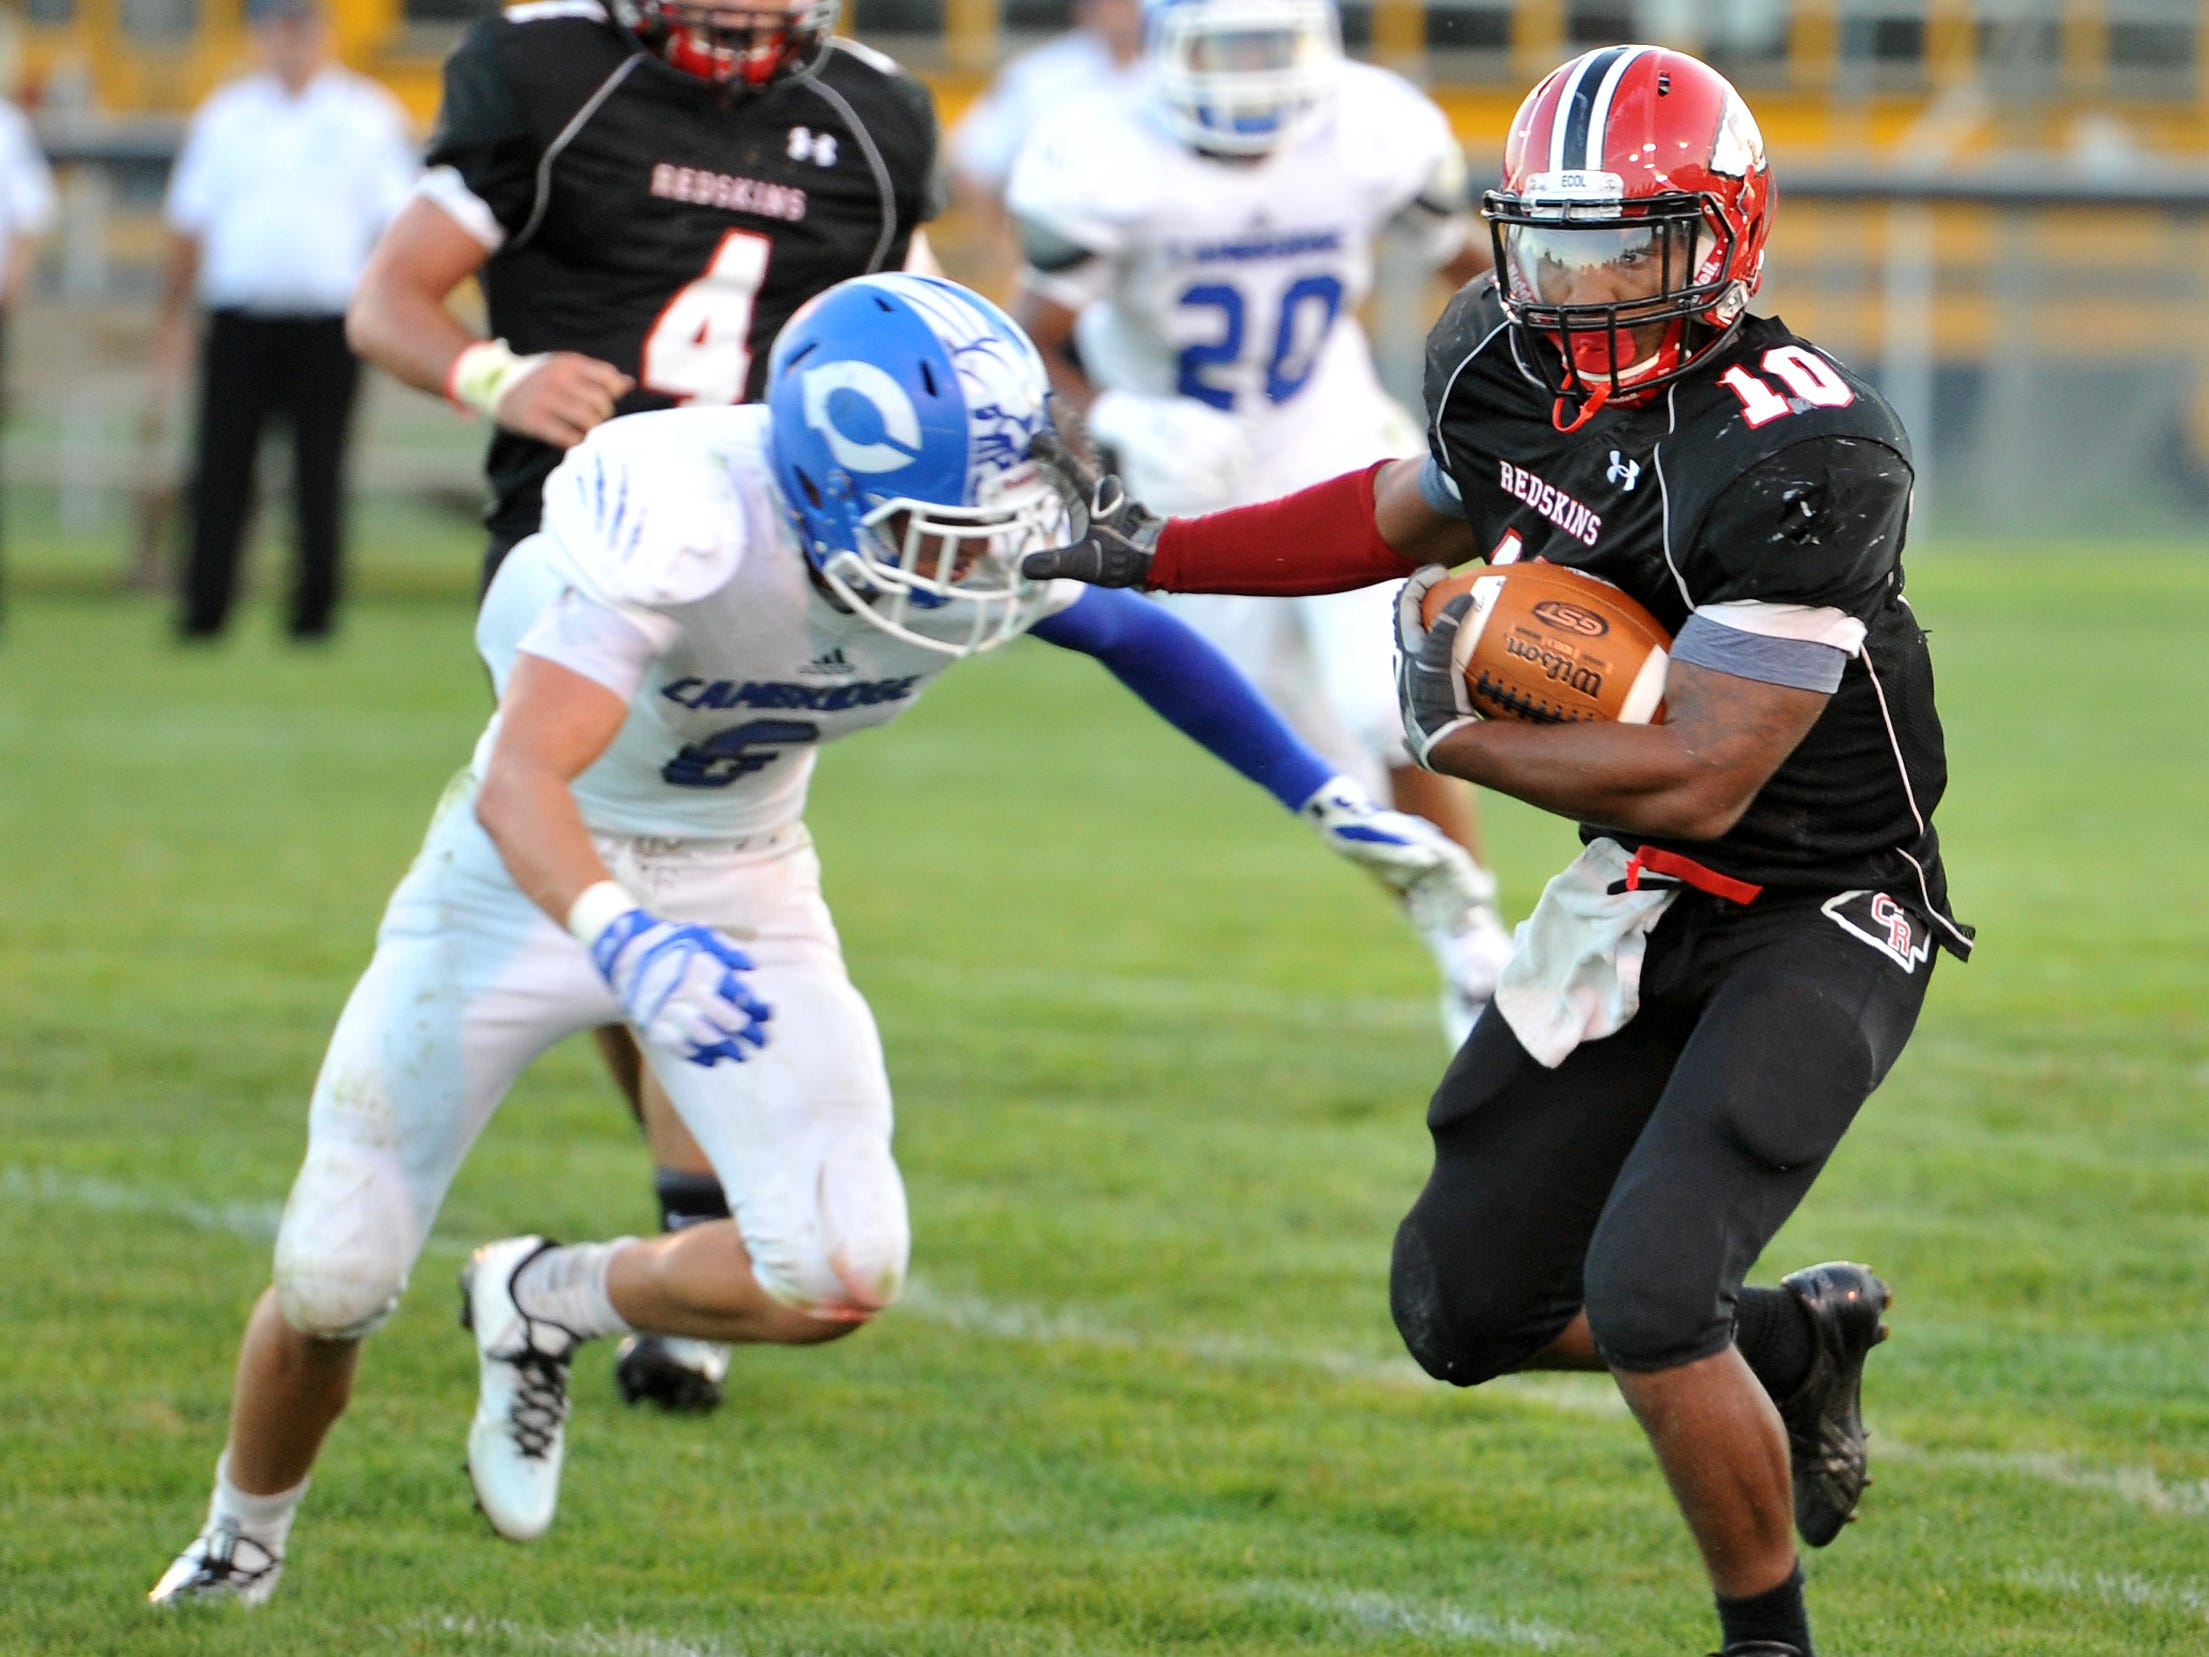 Coshocton Redskins senior Dom Johns stiff arms Cambridge's Riley Hayhurst on his way to the end zone in an Aug. 29 game against Cambridge. Johns was a Division V first-team All-Ohio selection Wednesday.